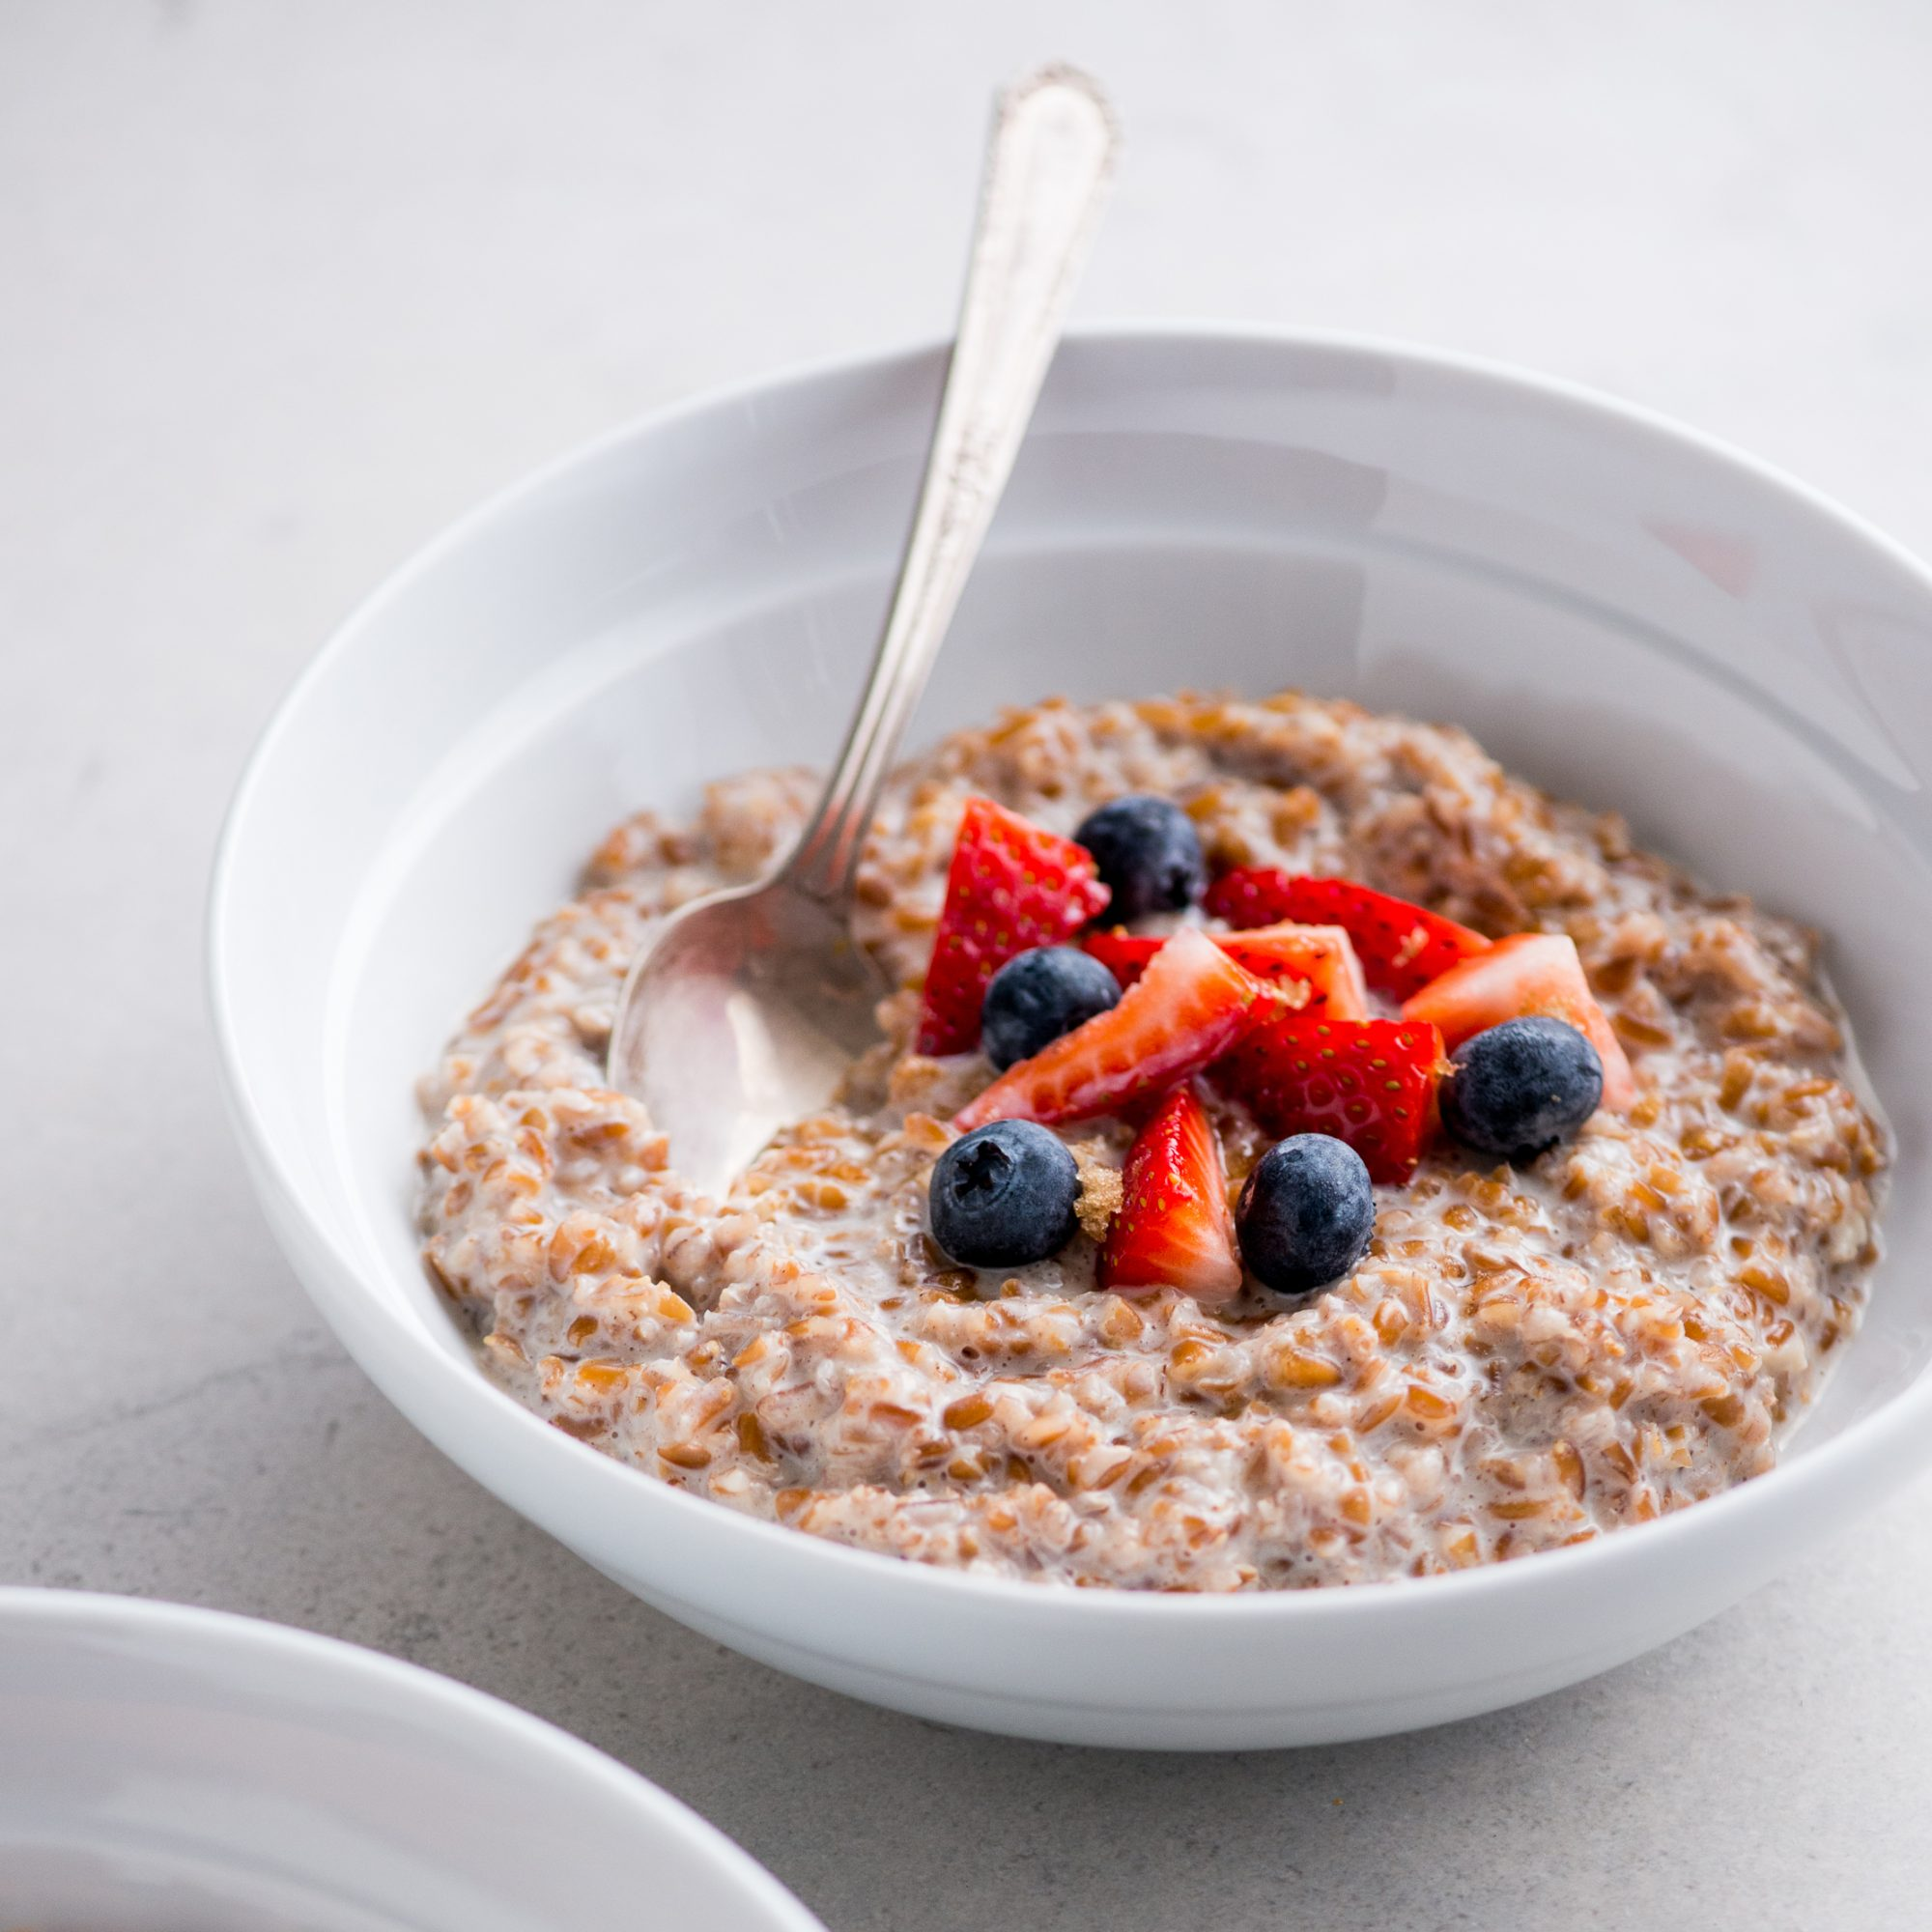 Brown Sugar and Cinnamon Bulgur Breakfast Bowl